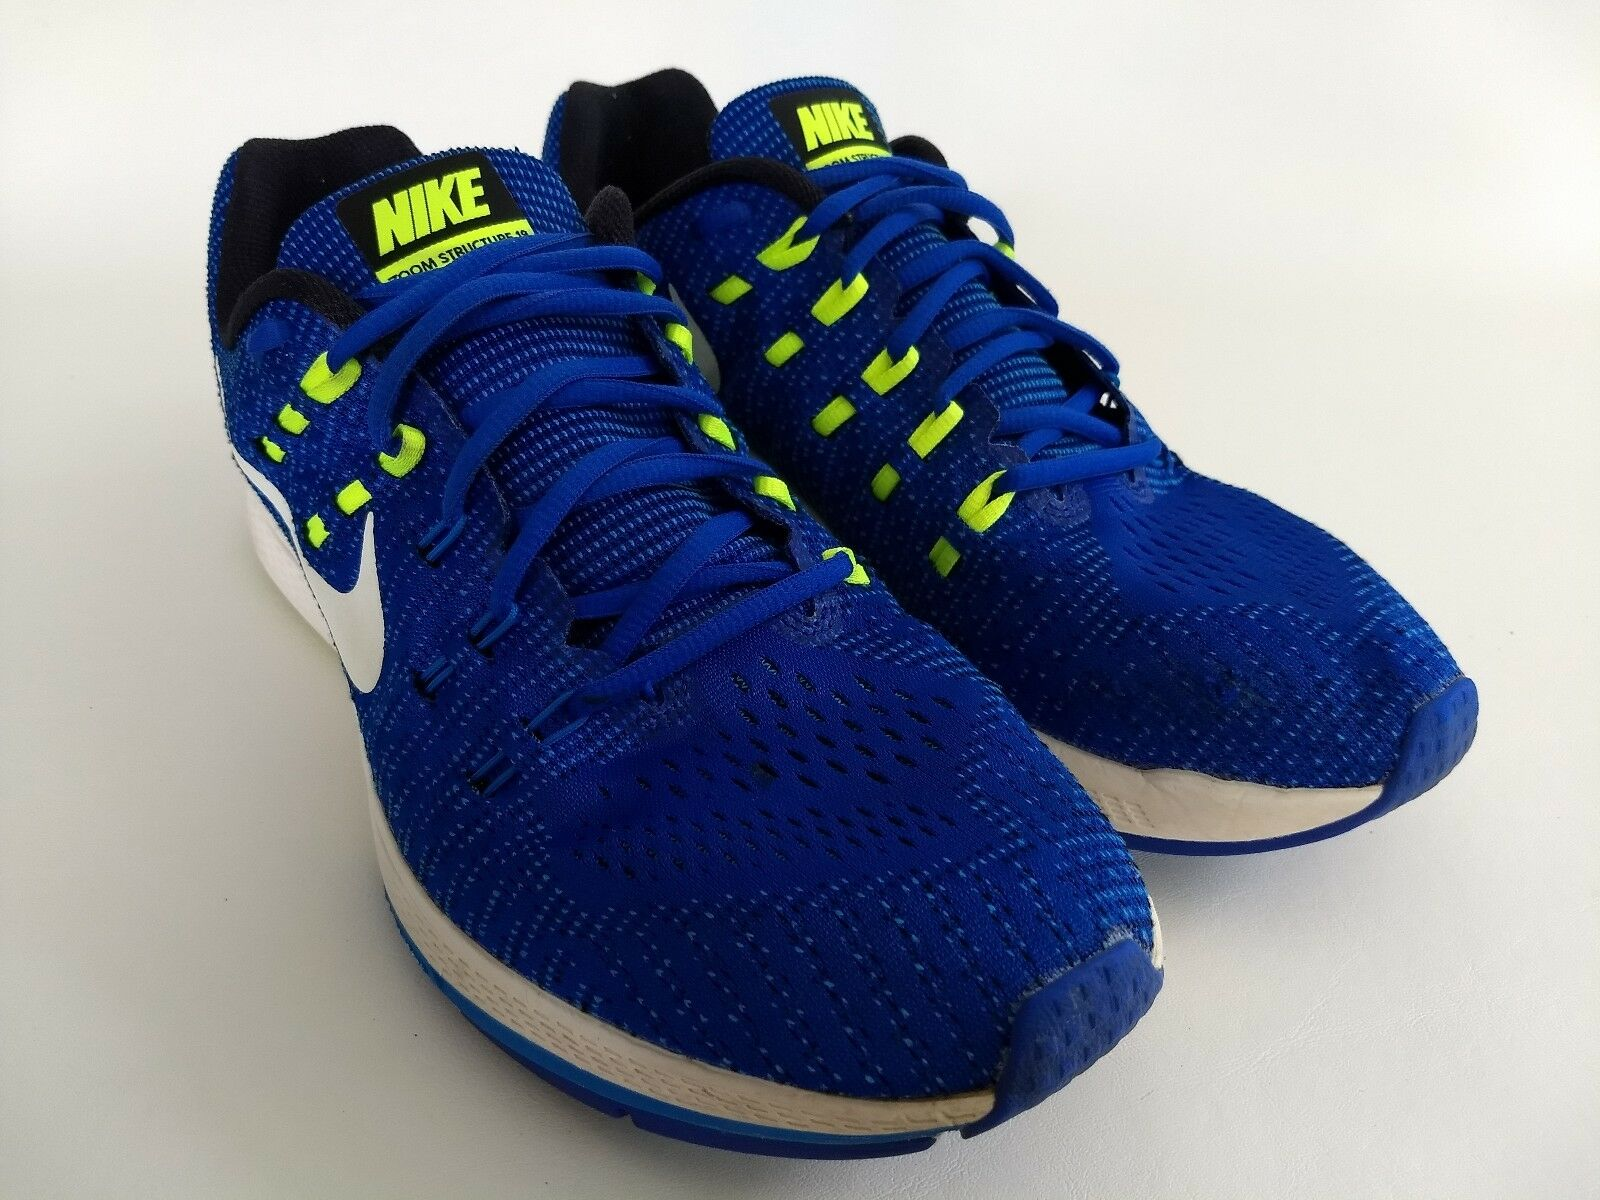 Nike Zoom Structure 19 Mens Size 12 Blue Running Training Trail Walking Sneakers